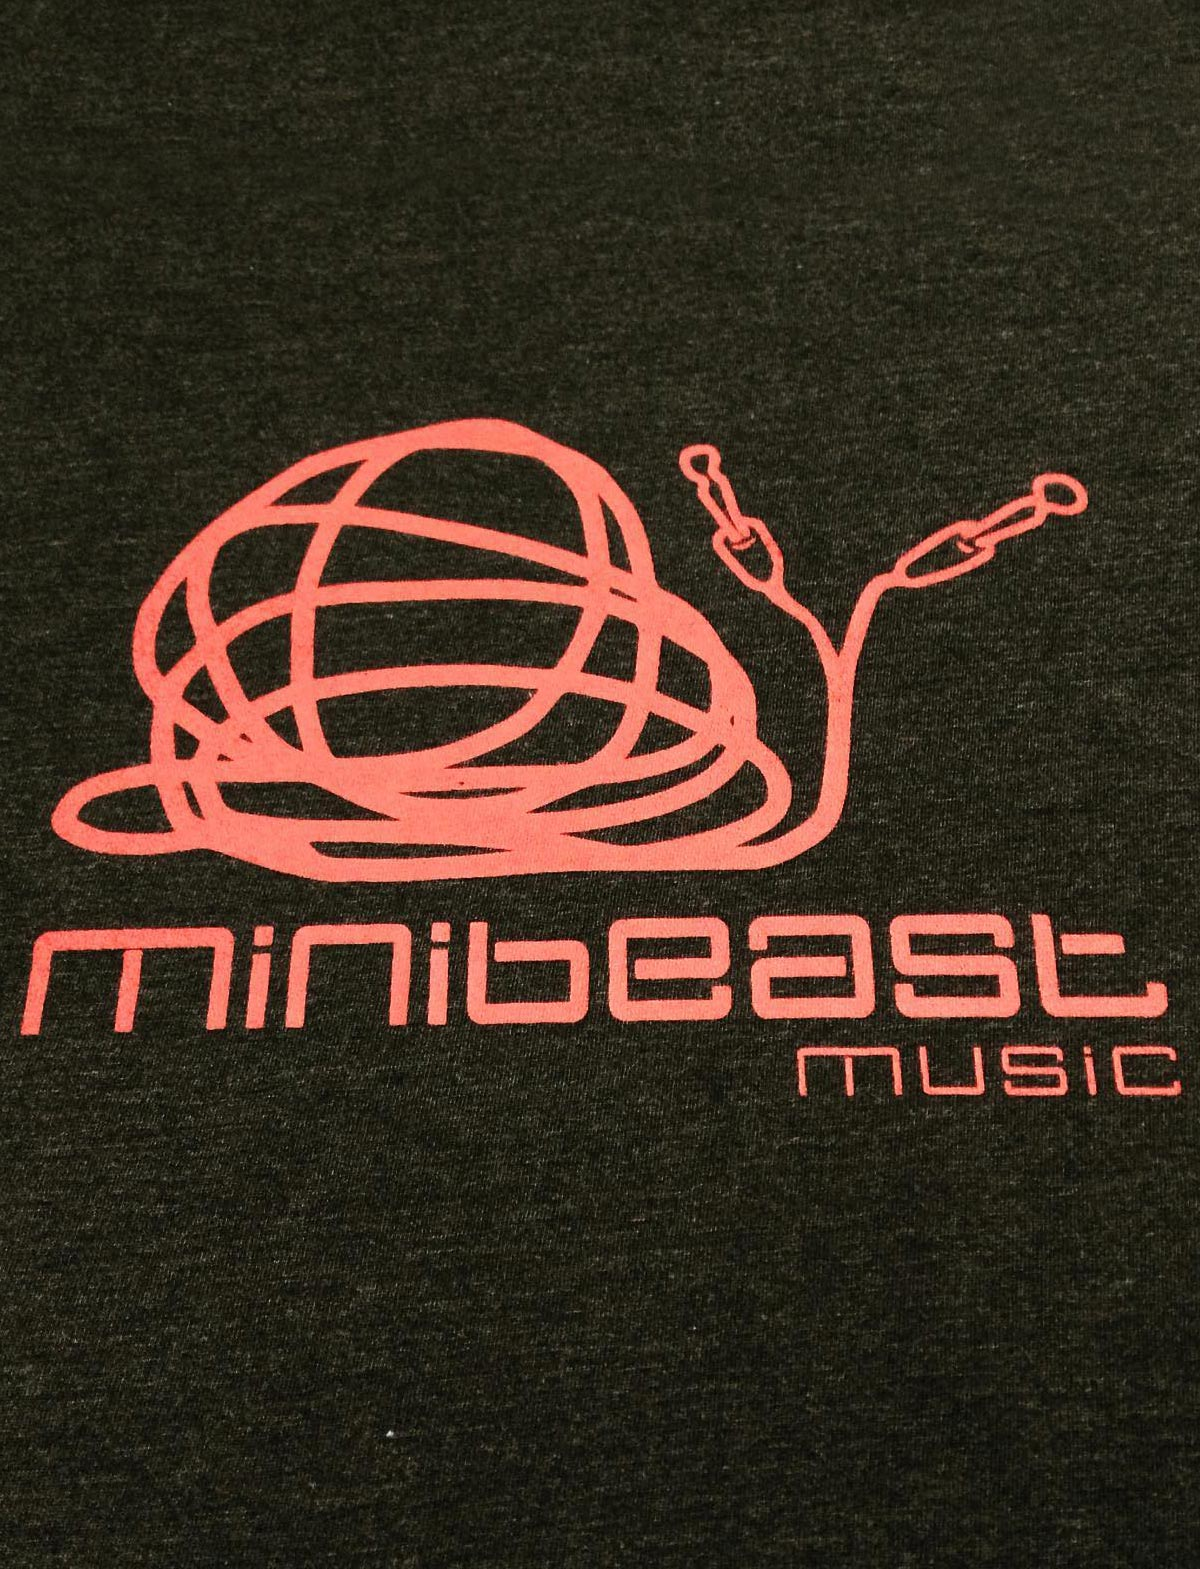 minibeast music studio, organic black t-shirt